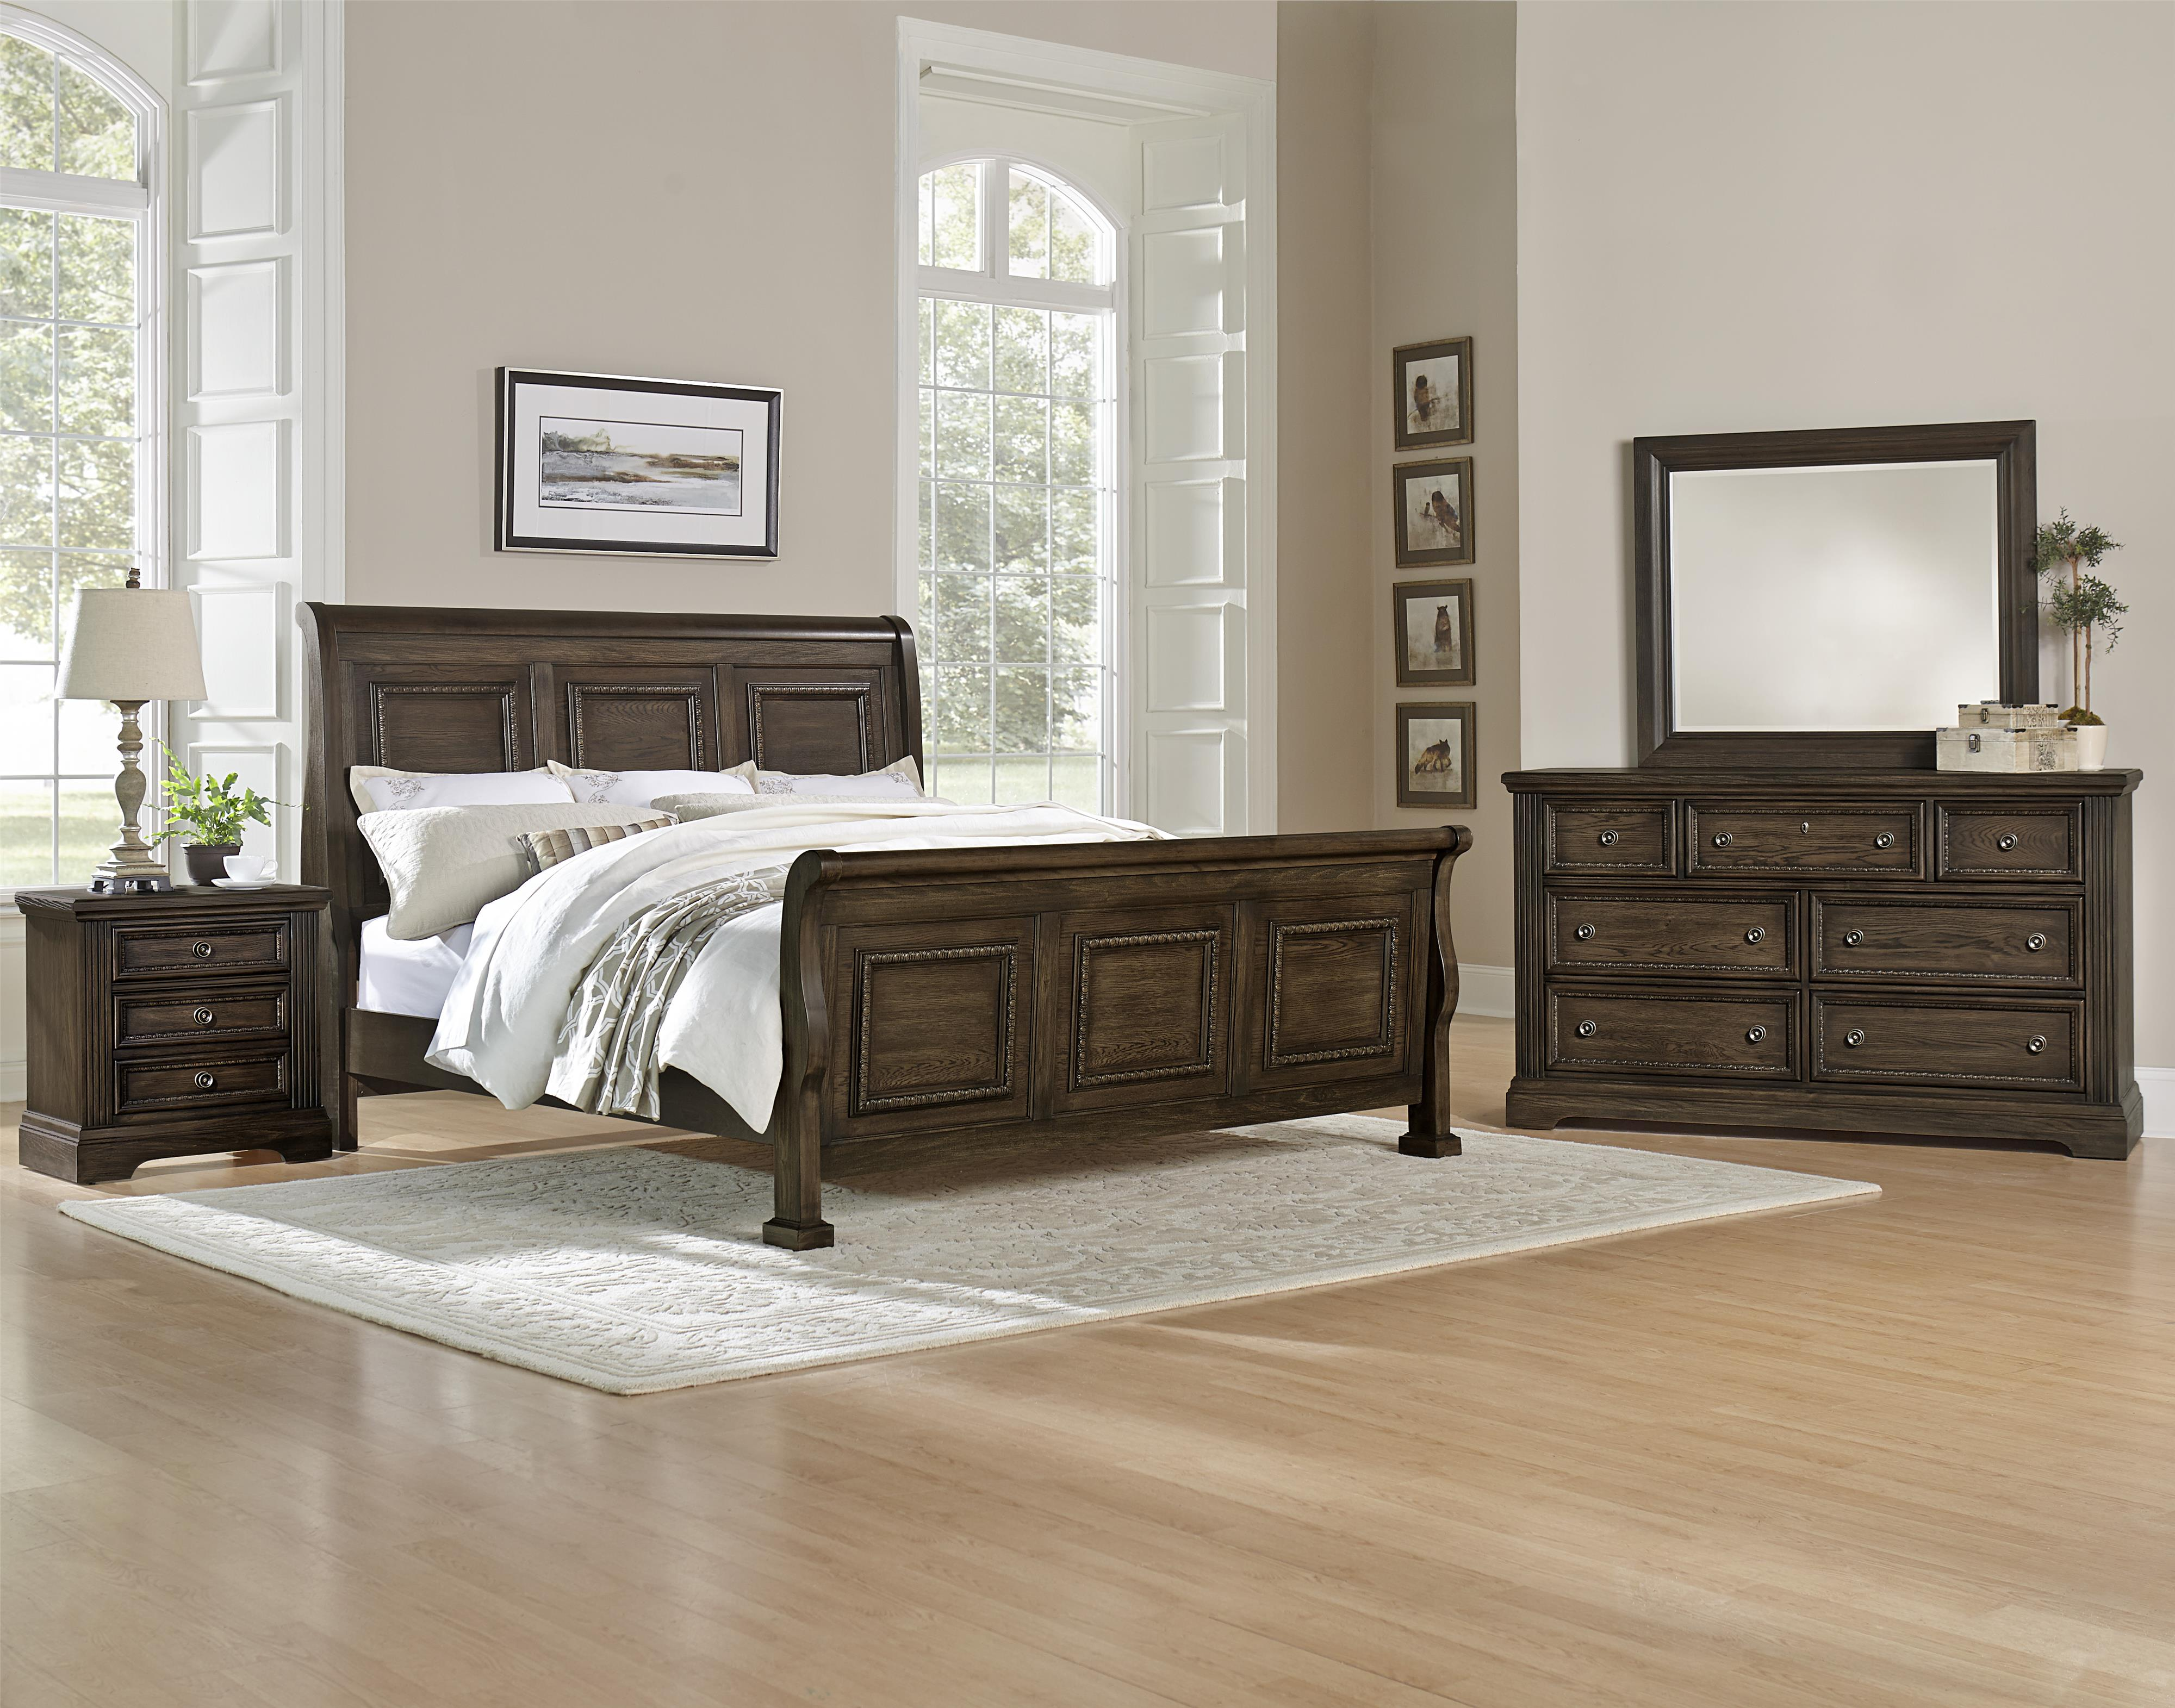 Vaughan Bassett Affinity Queen Bedroom Group - Item Number: 560 Q Bedroom Group 2